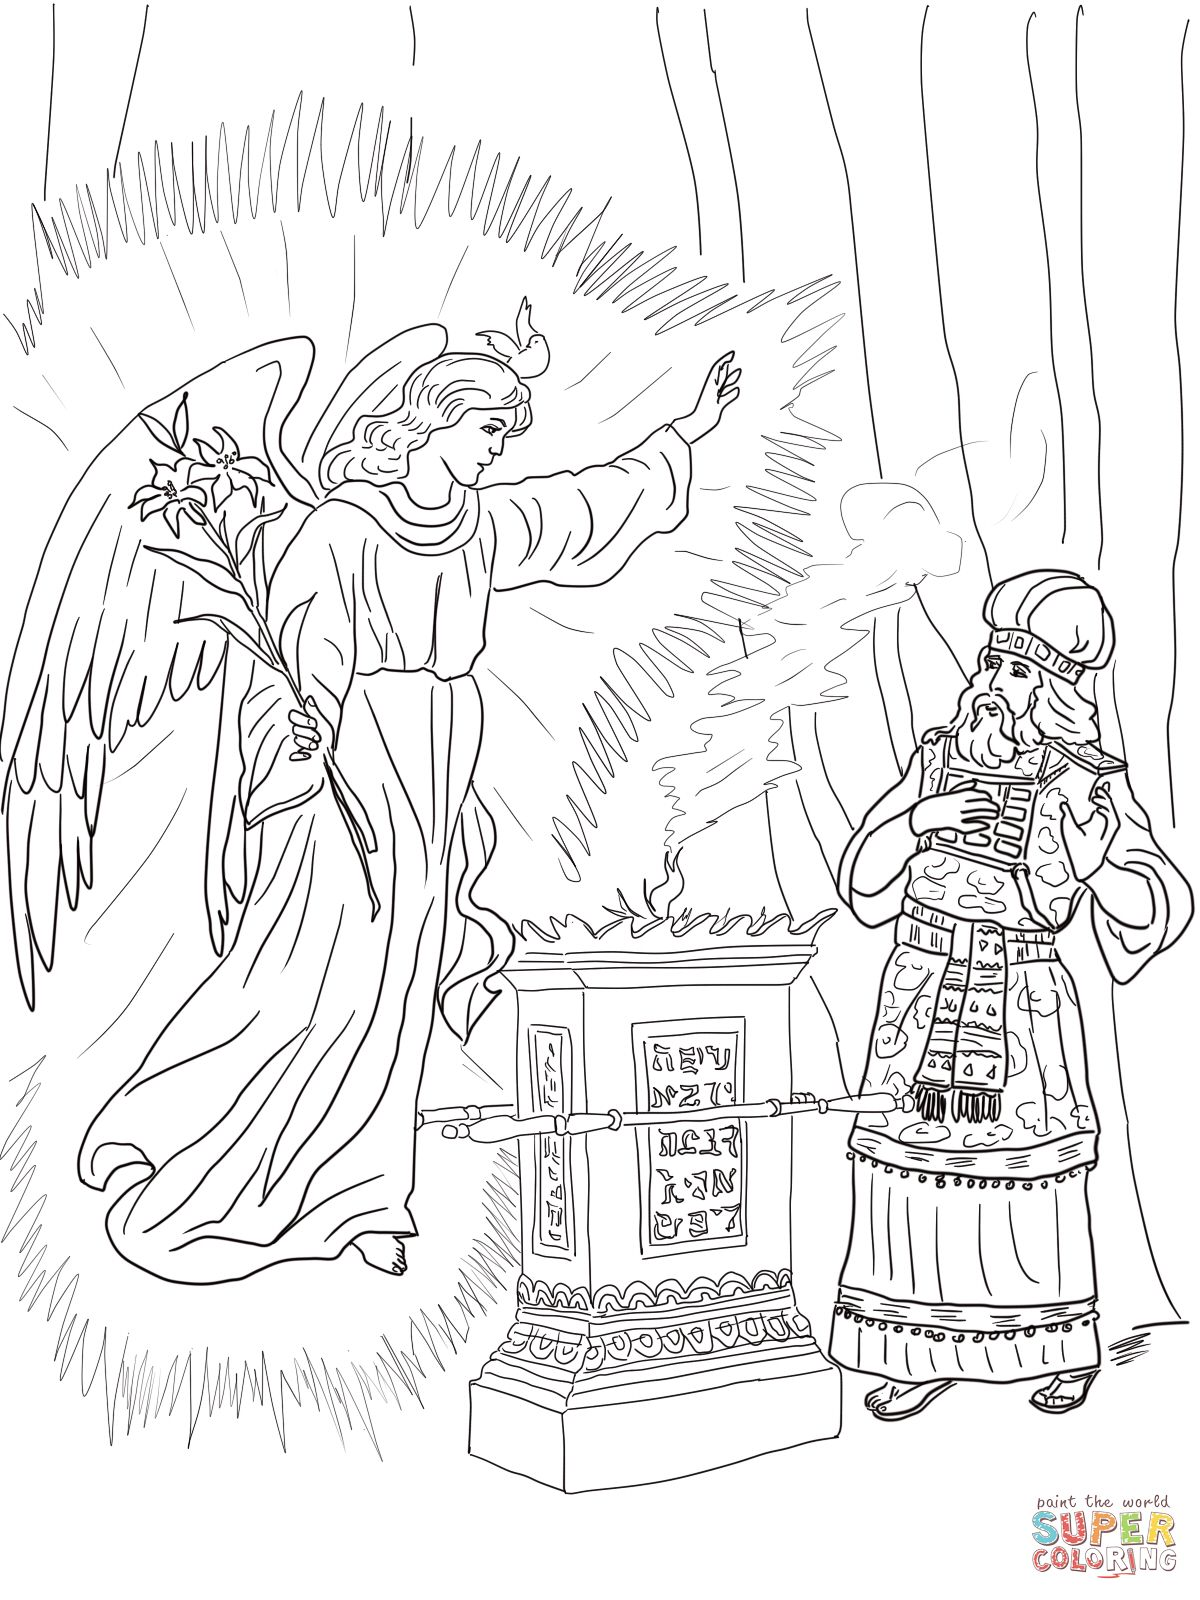 2 Angel Visits Zechariah Coloring Page 1 200 1 600